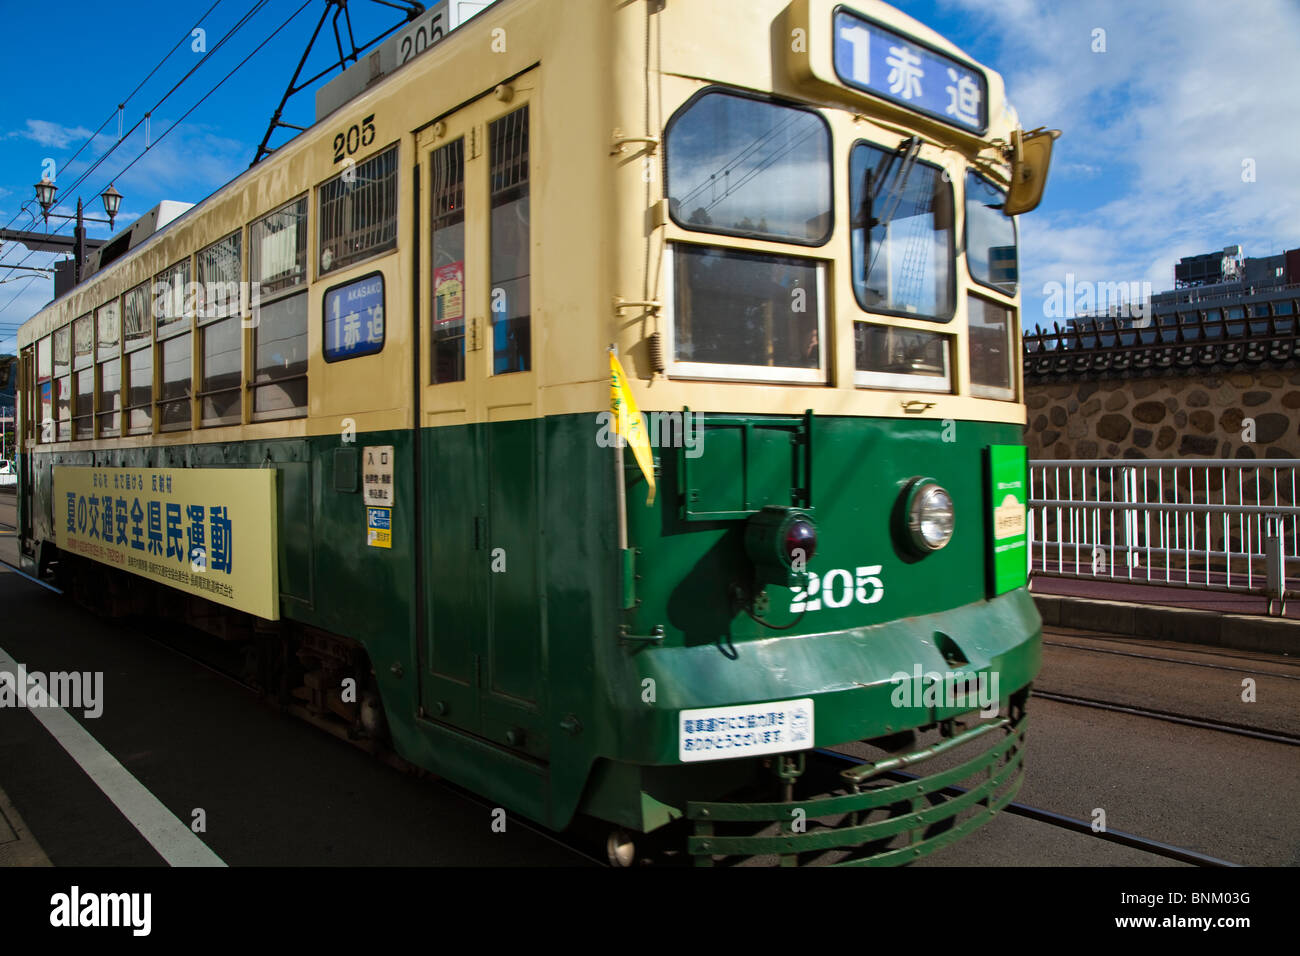 Nagasaki Electric Tramway is a private tram system in Nagasaki. The trams began service in 1915 and has been running - Stock Image